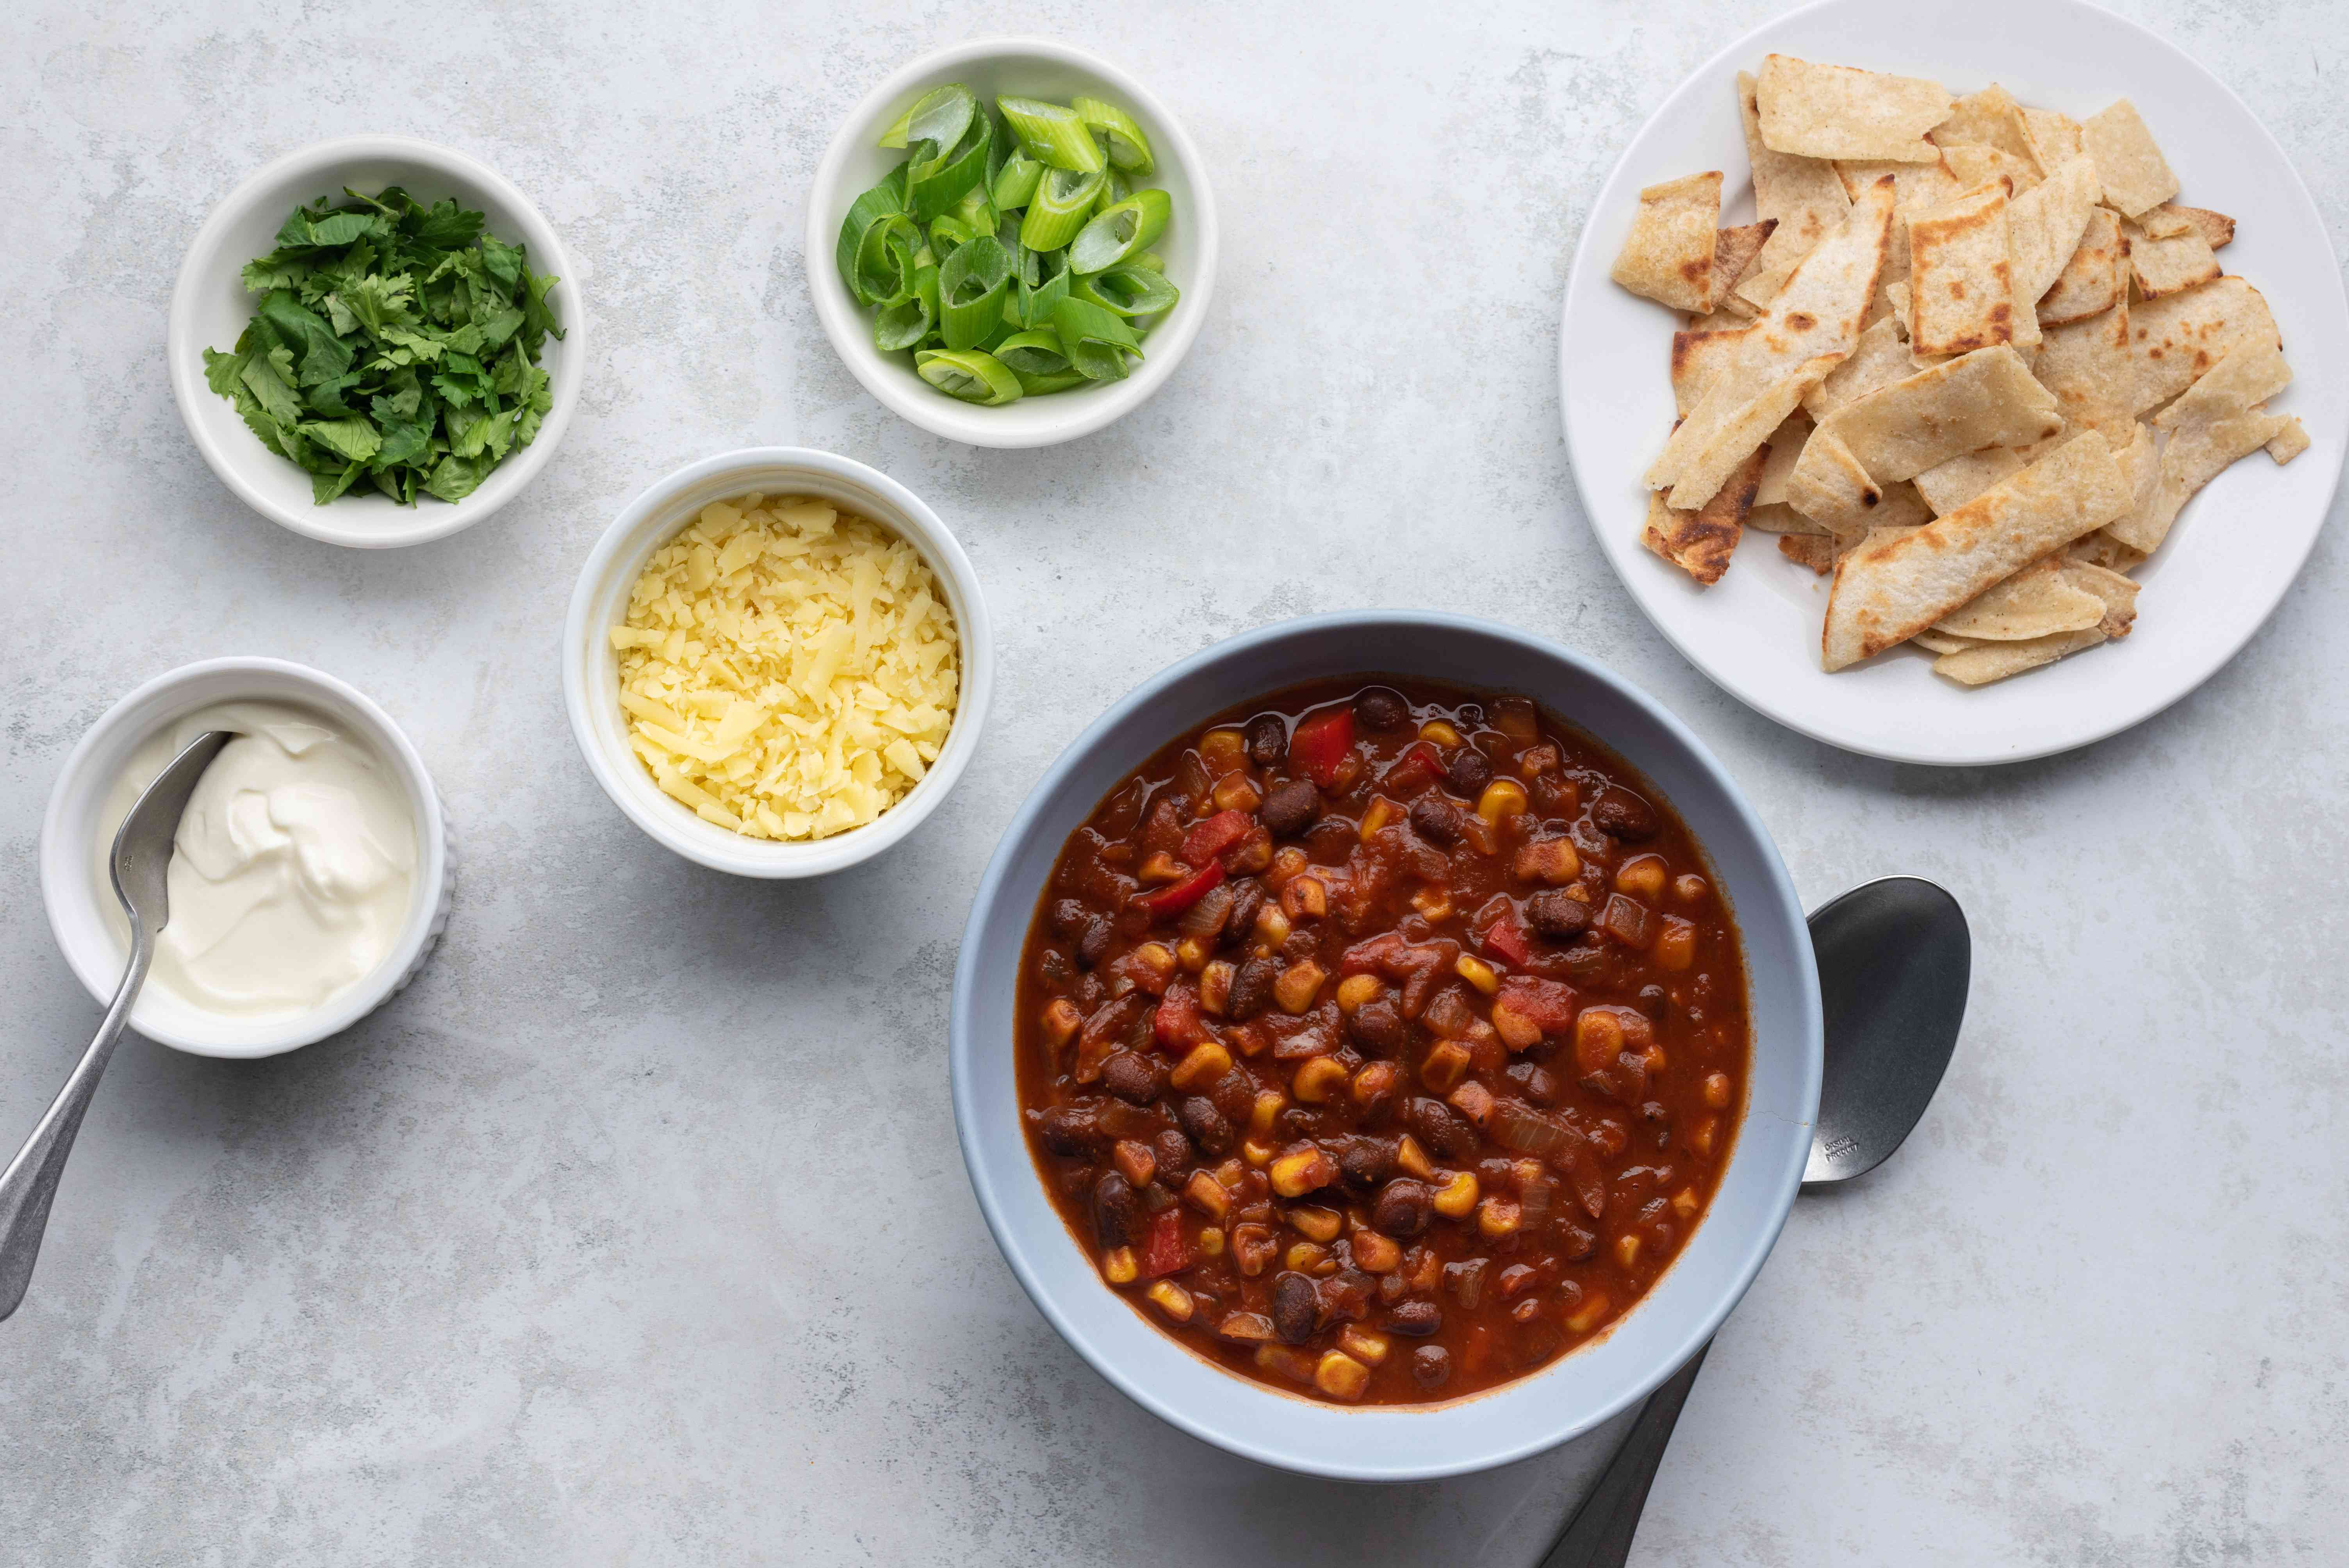 Black bean and corn chili with toppings